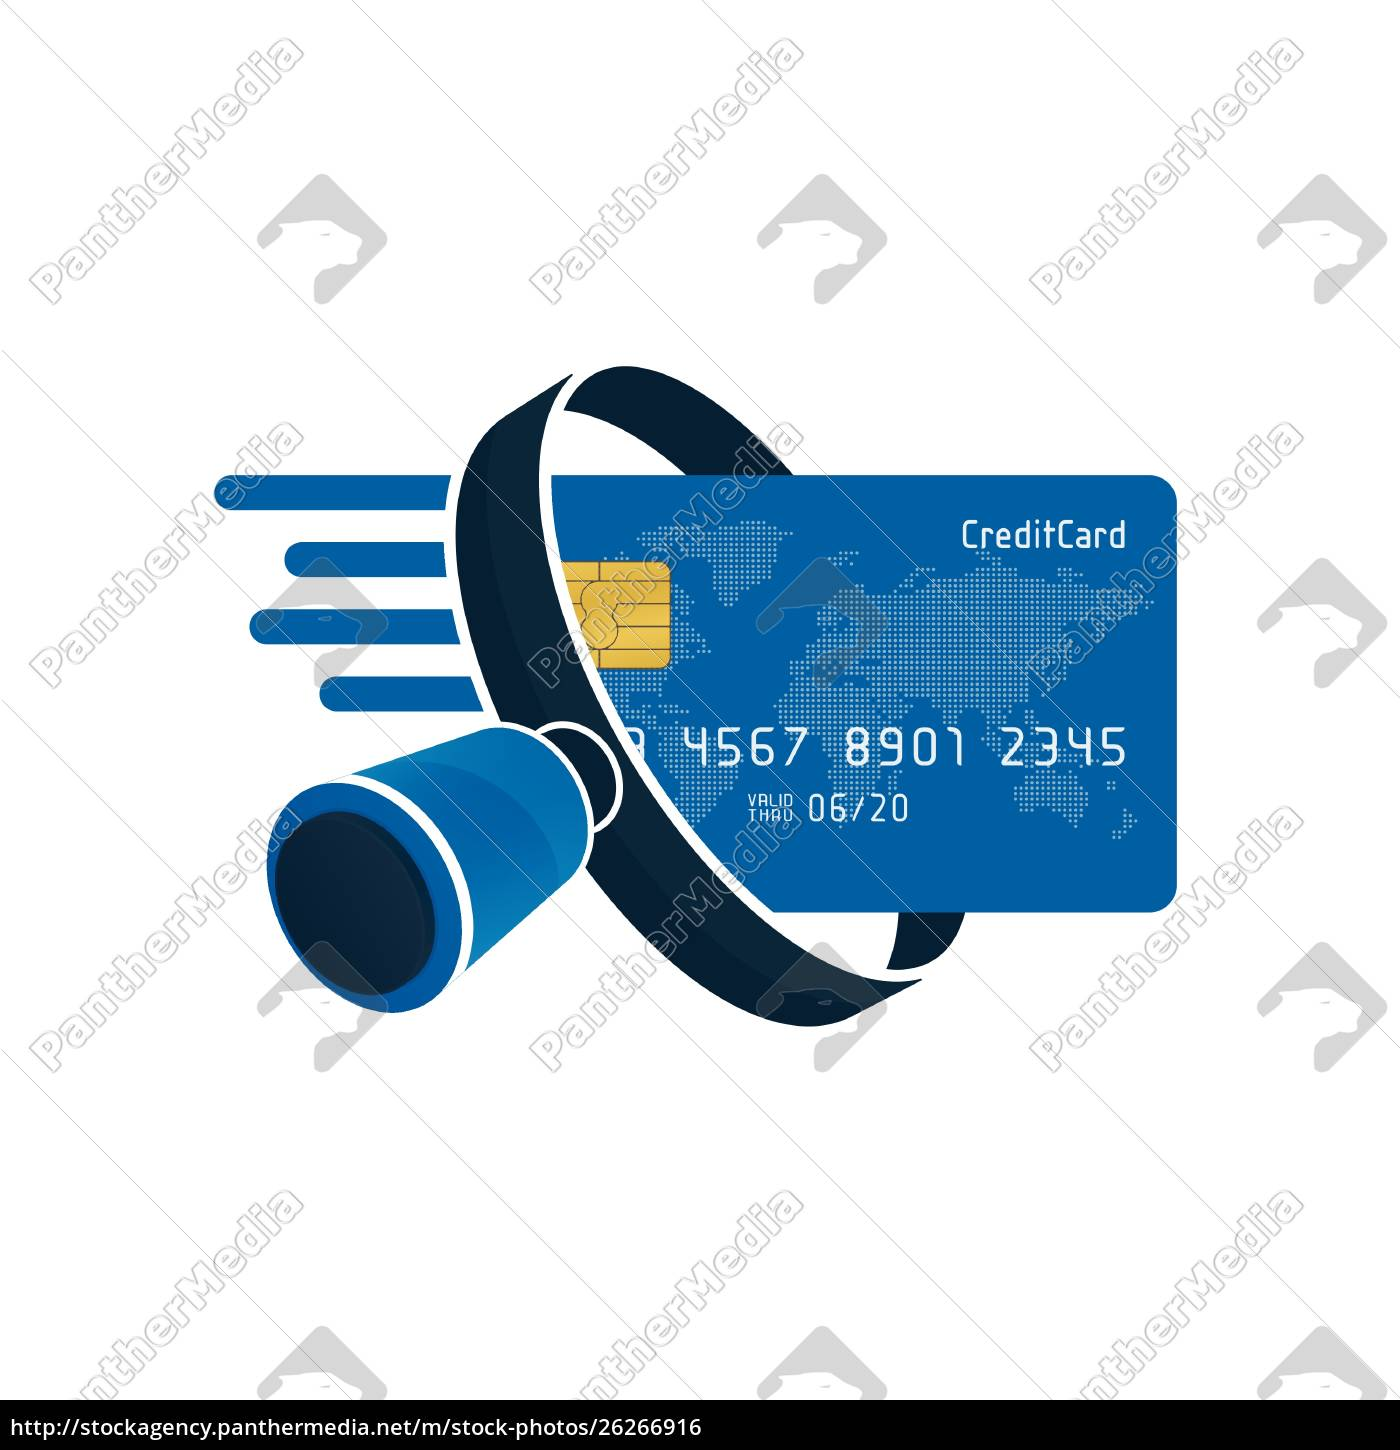 blue, credit, card, and, black, magnifying - 26266916